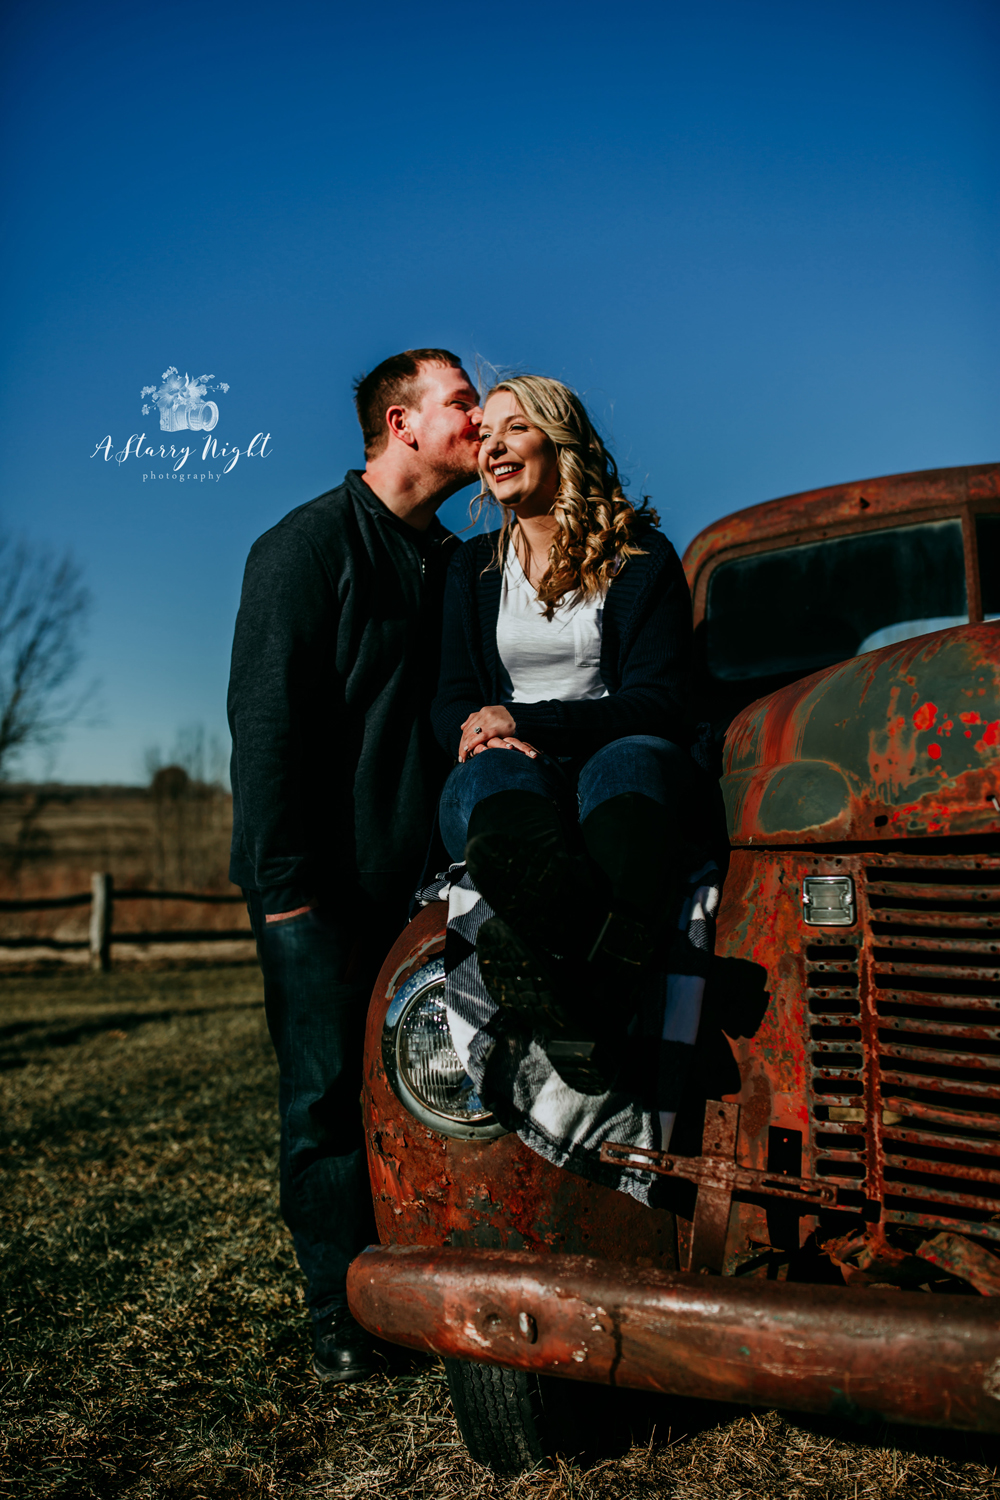 A fun and romantic Dark and Moody Engagement shoot over at Crooked River Barn in Beaverton, MI.